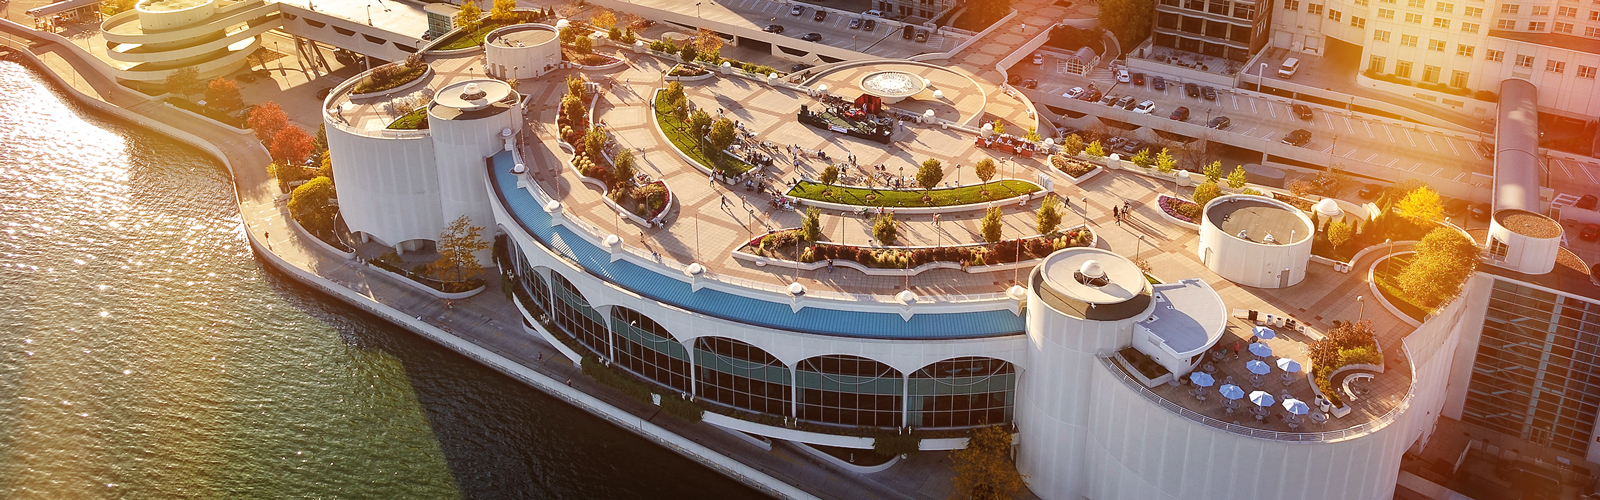 Aerial photograph of the Monona Terrace at dawn